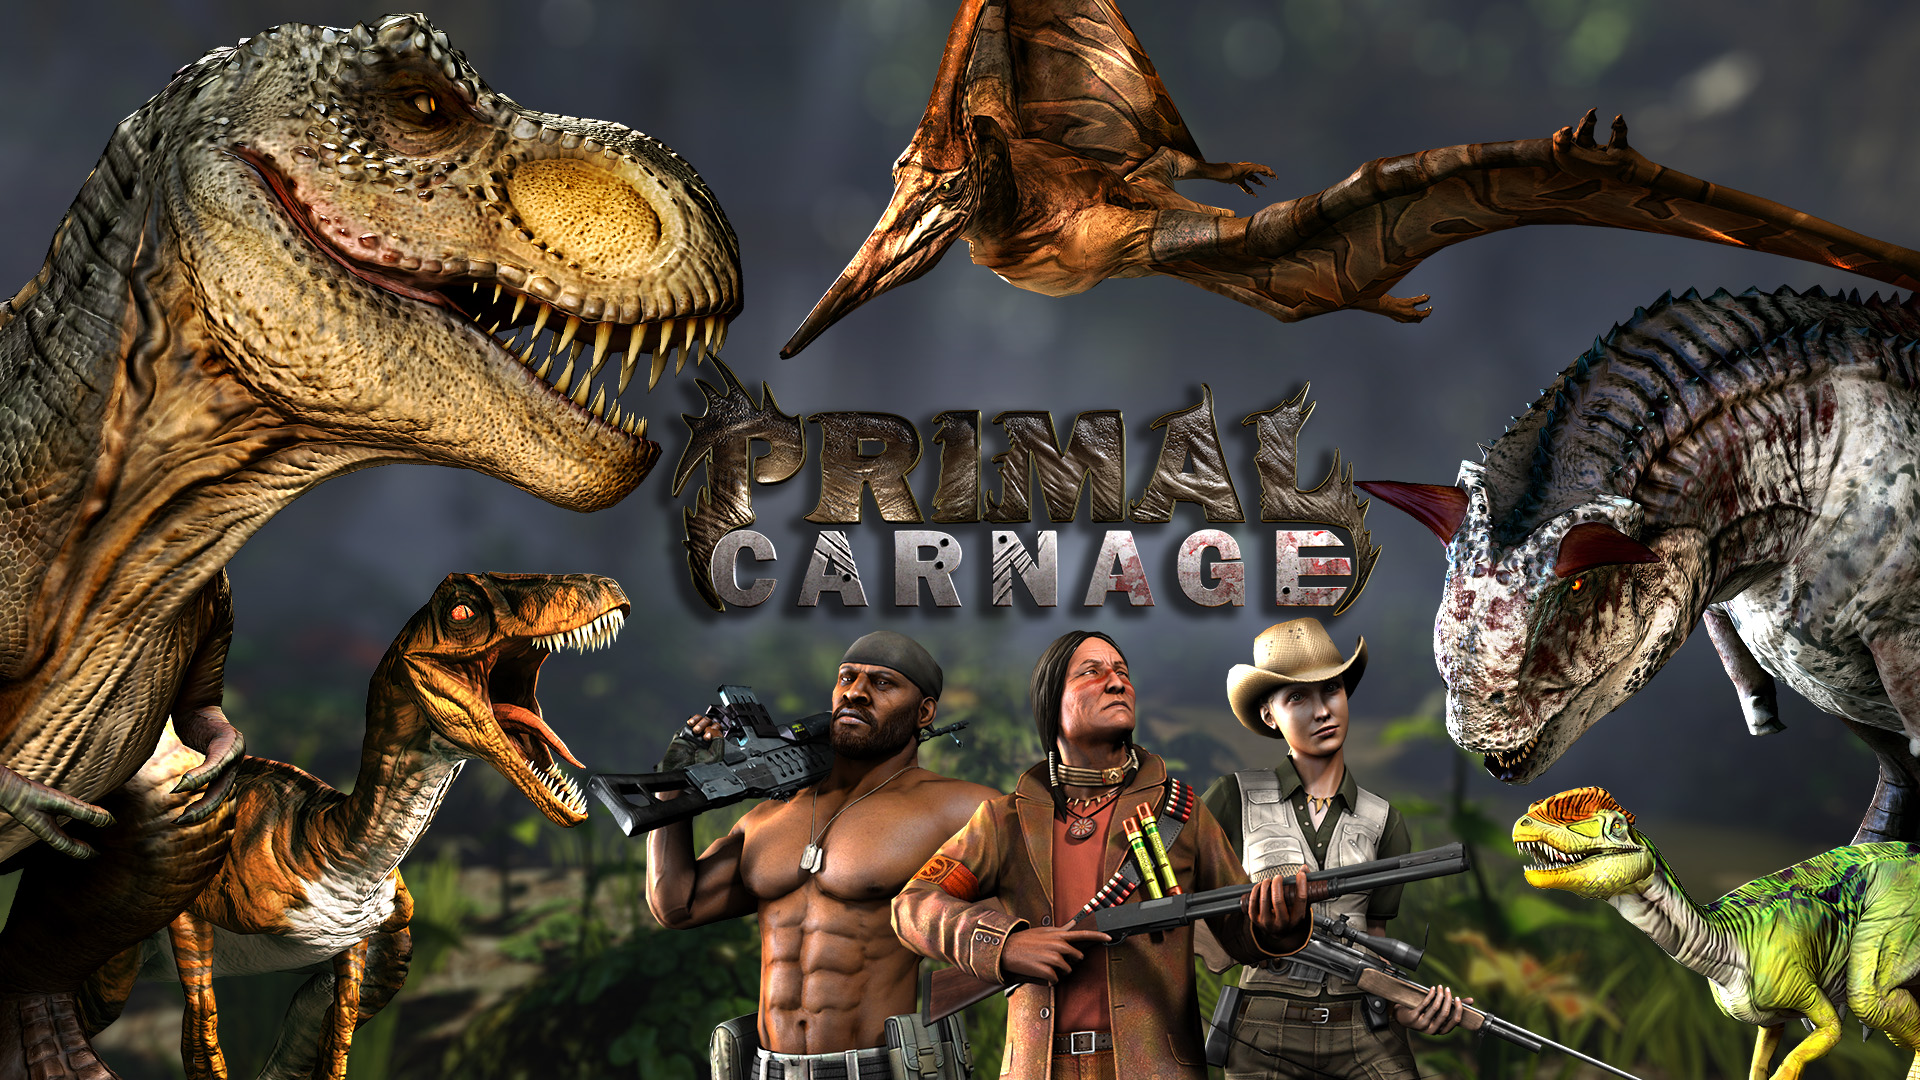 Primal Carnage is 50% off during the Steam Holiday Sale ...